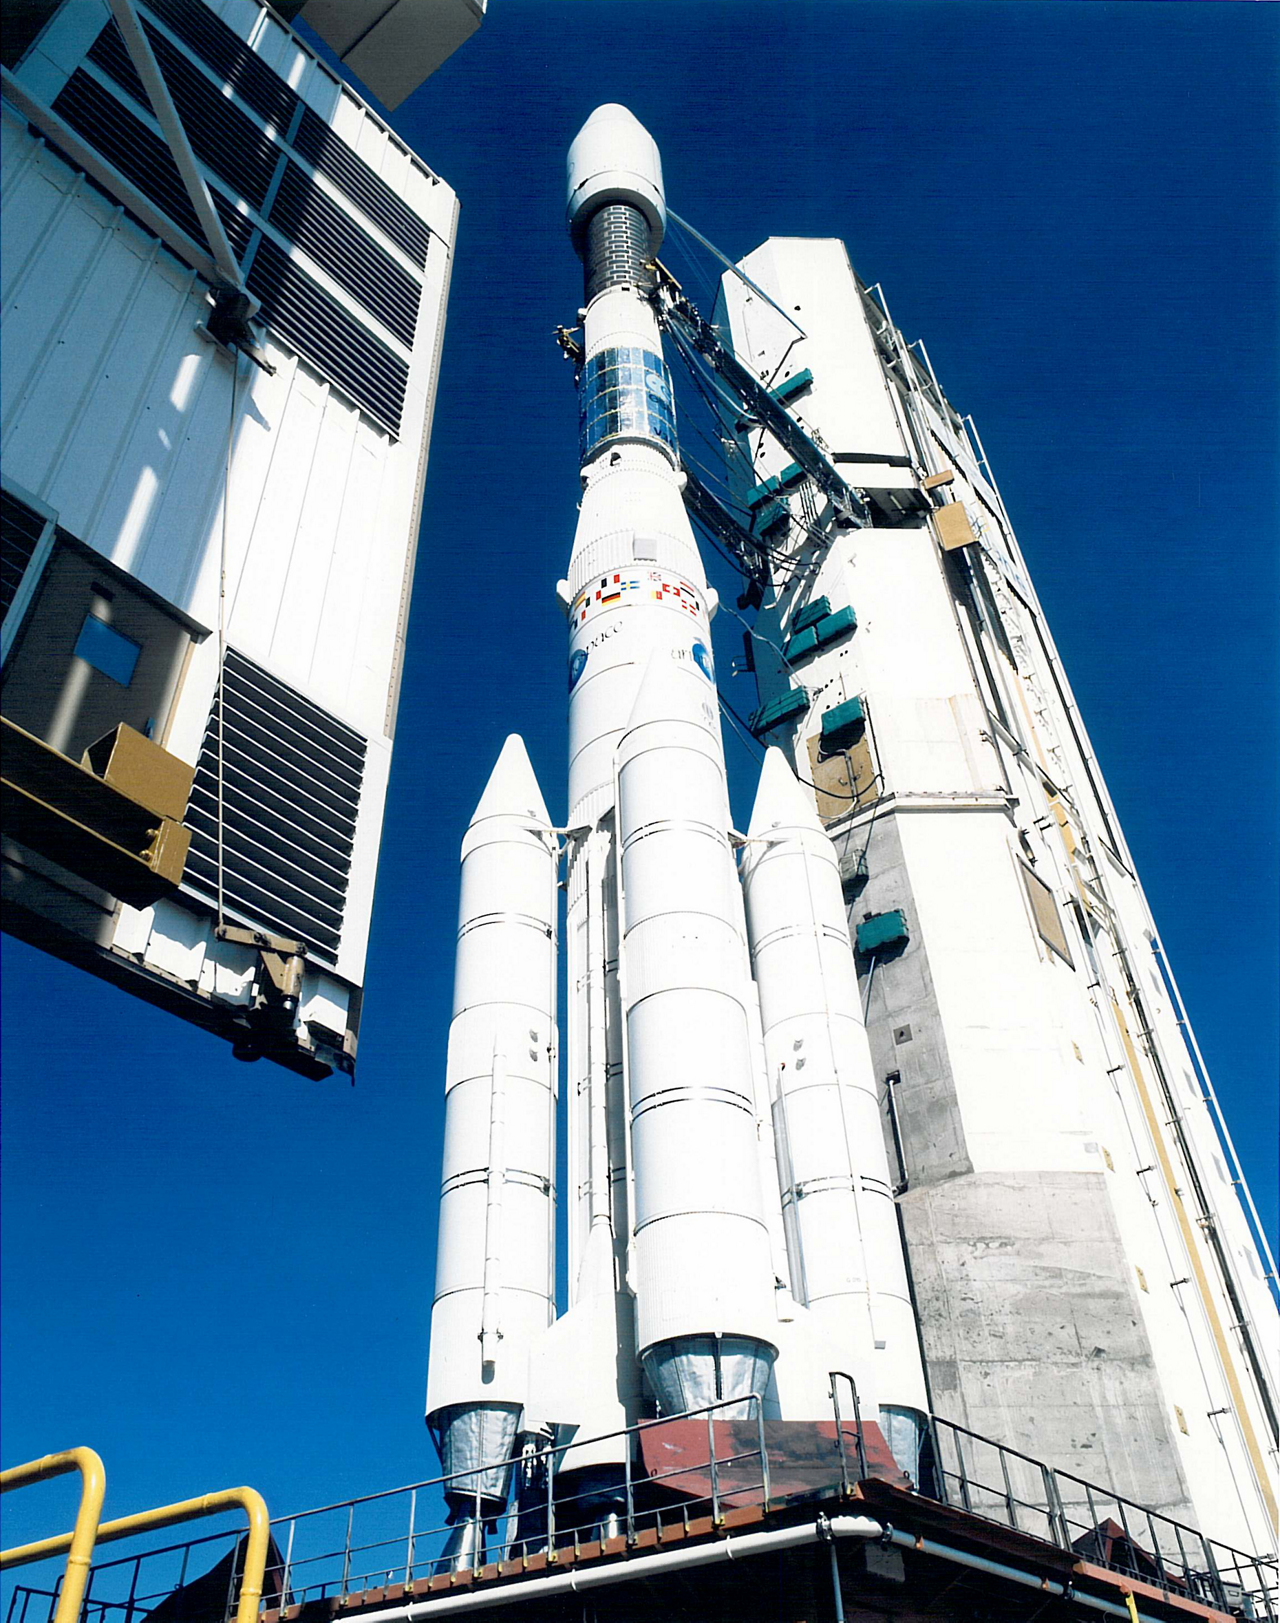 Ariane 44L, the most powerful version of the Ariane 4 family, on the launchpad in Kourou, French Guiana, some hours before liftoff of of flight V34, carrying Intelsat VI-F2, in 1989. Photo: ESA